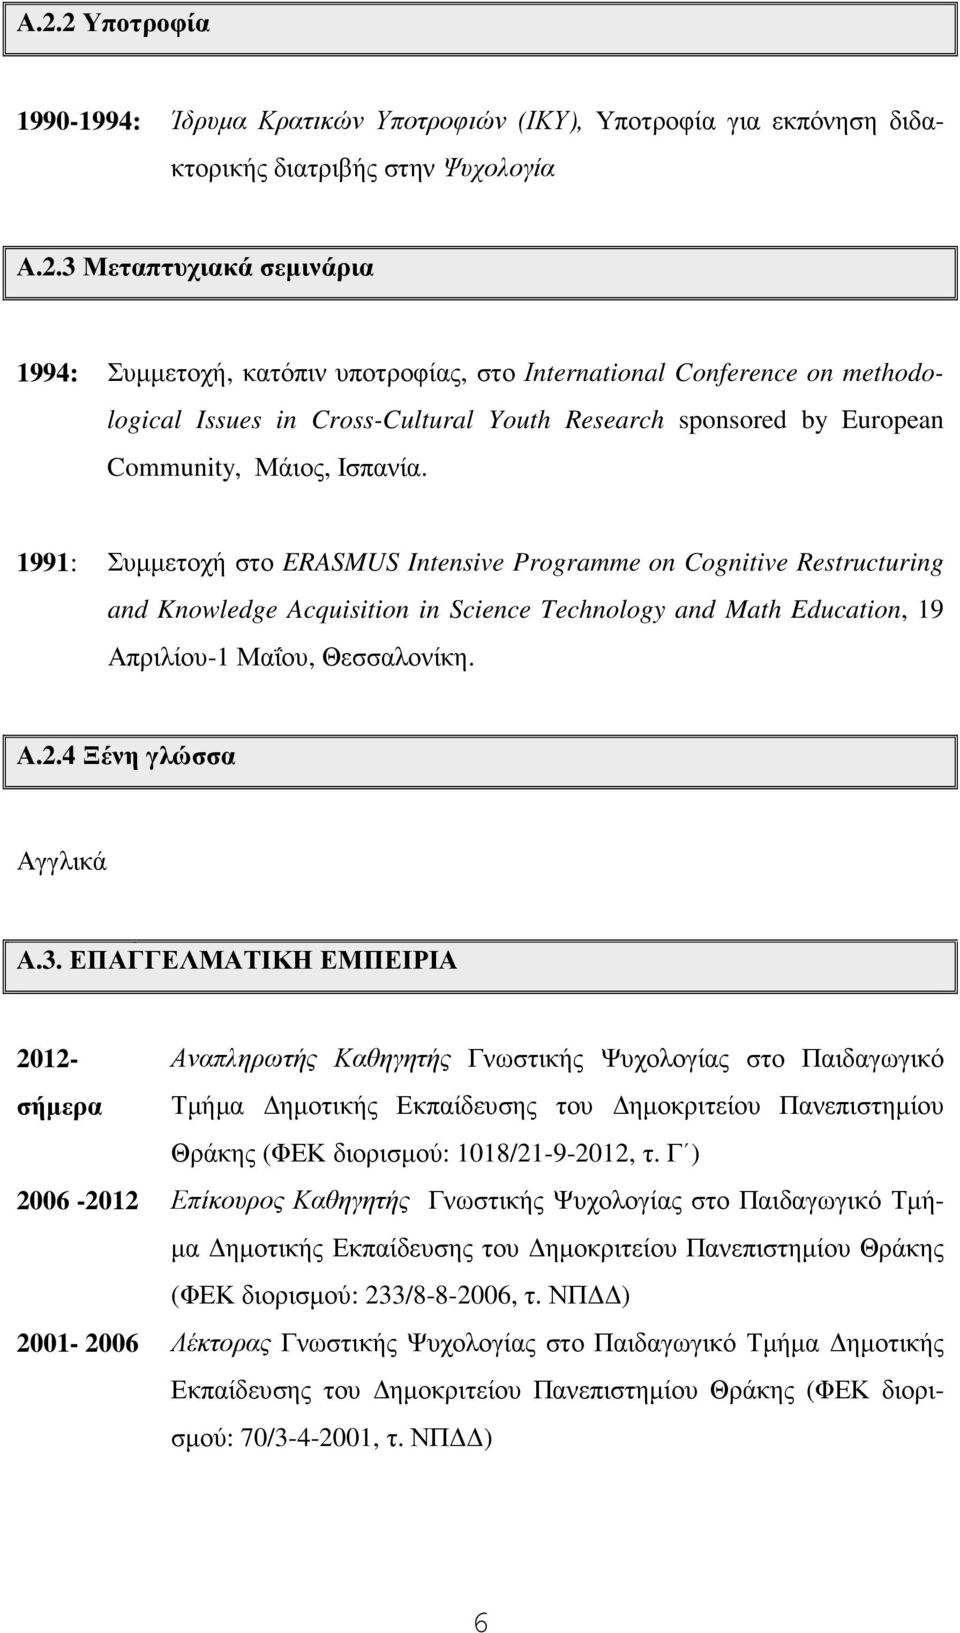 1991: Συµµετοχή στο ERASMUS Intensive Programme on Cognitive Restructuring and Knowledge Acquisition in Science Technology and Math Education, 19 Απριλίου-1 Μαΐου, Θεσσαλονίκη. Α.2.